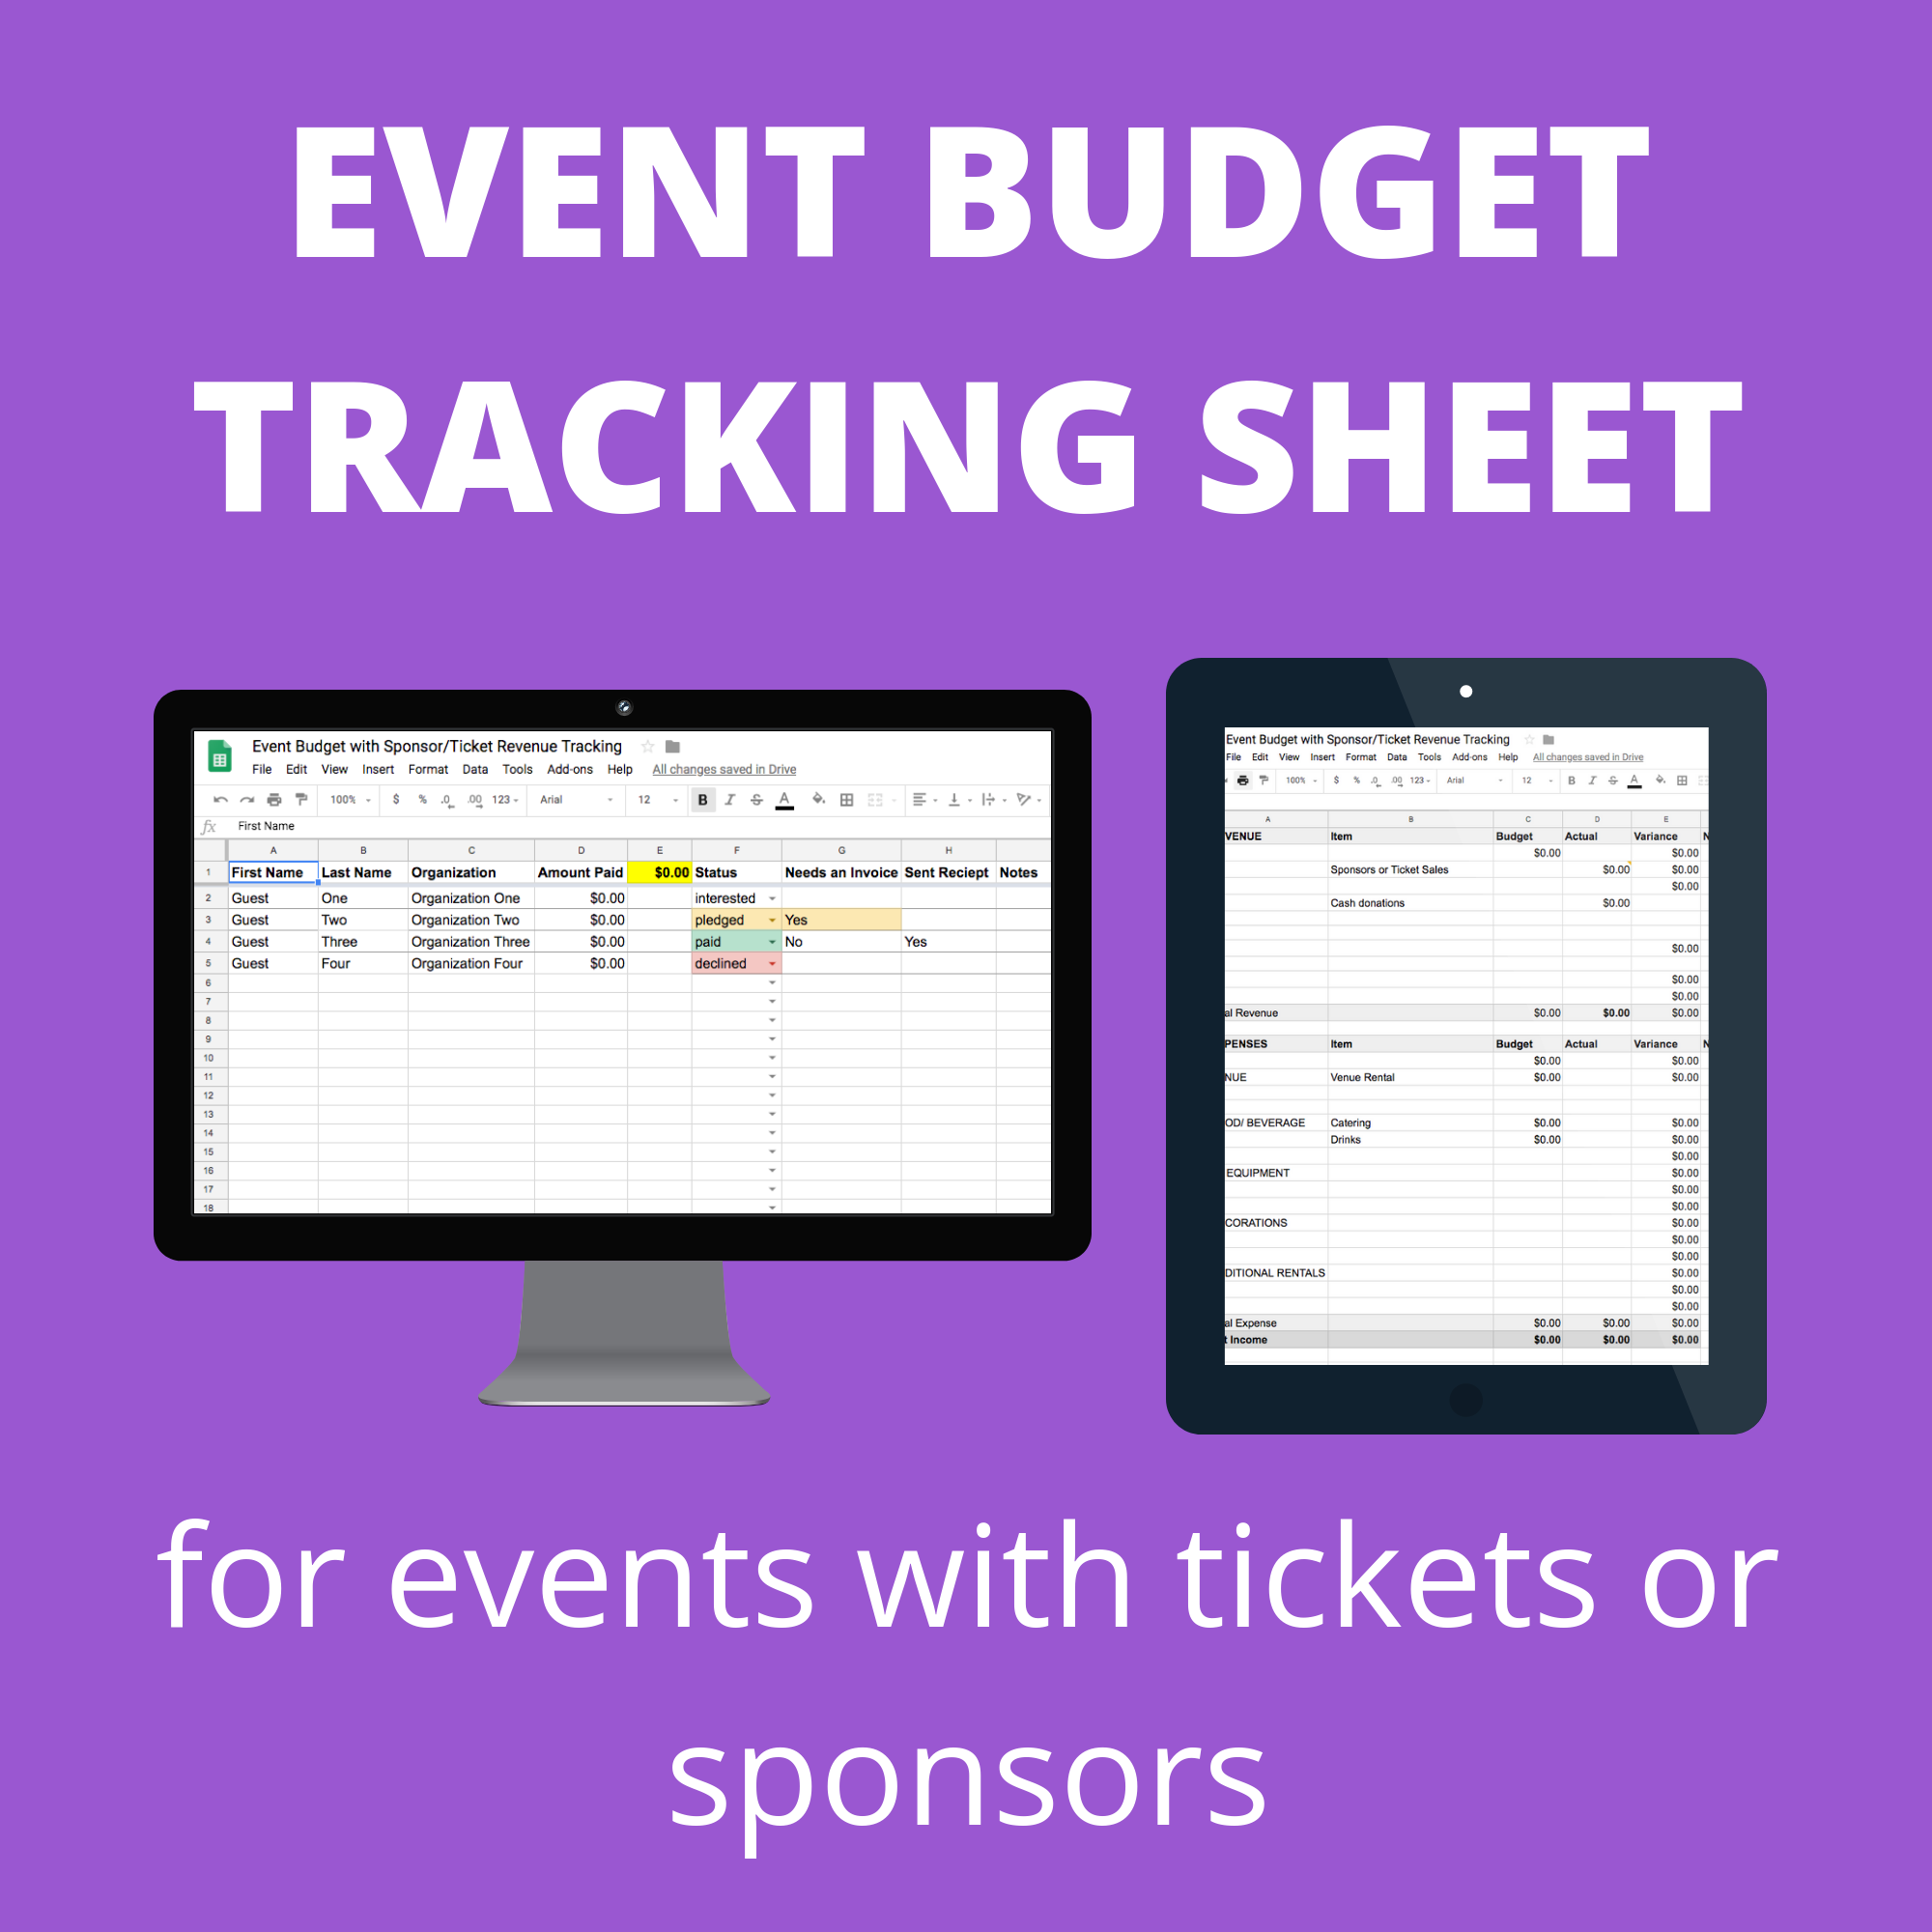 event budget tracking sheet.png